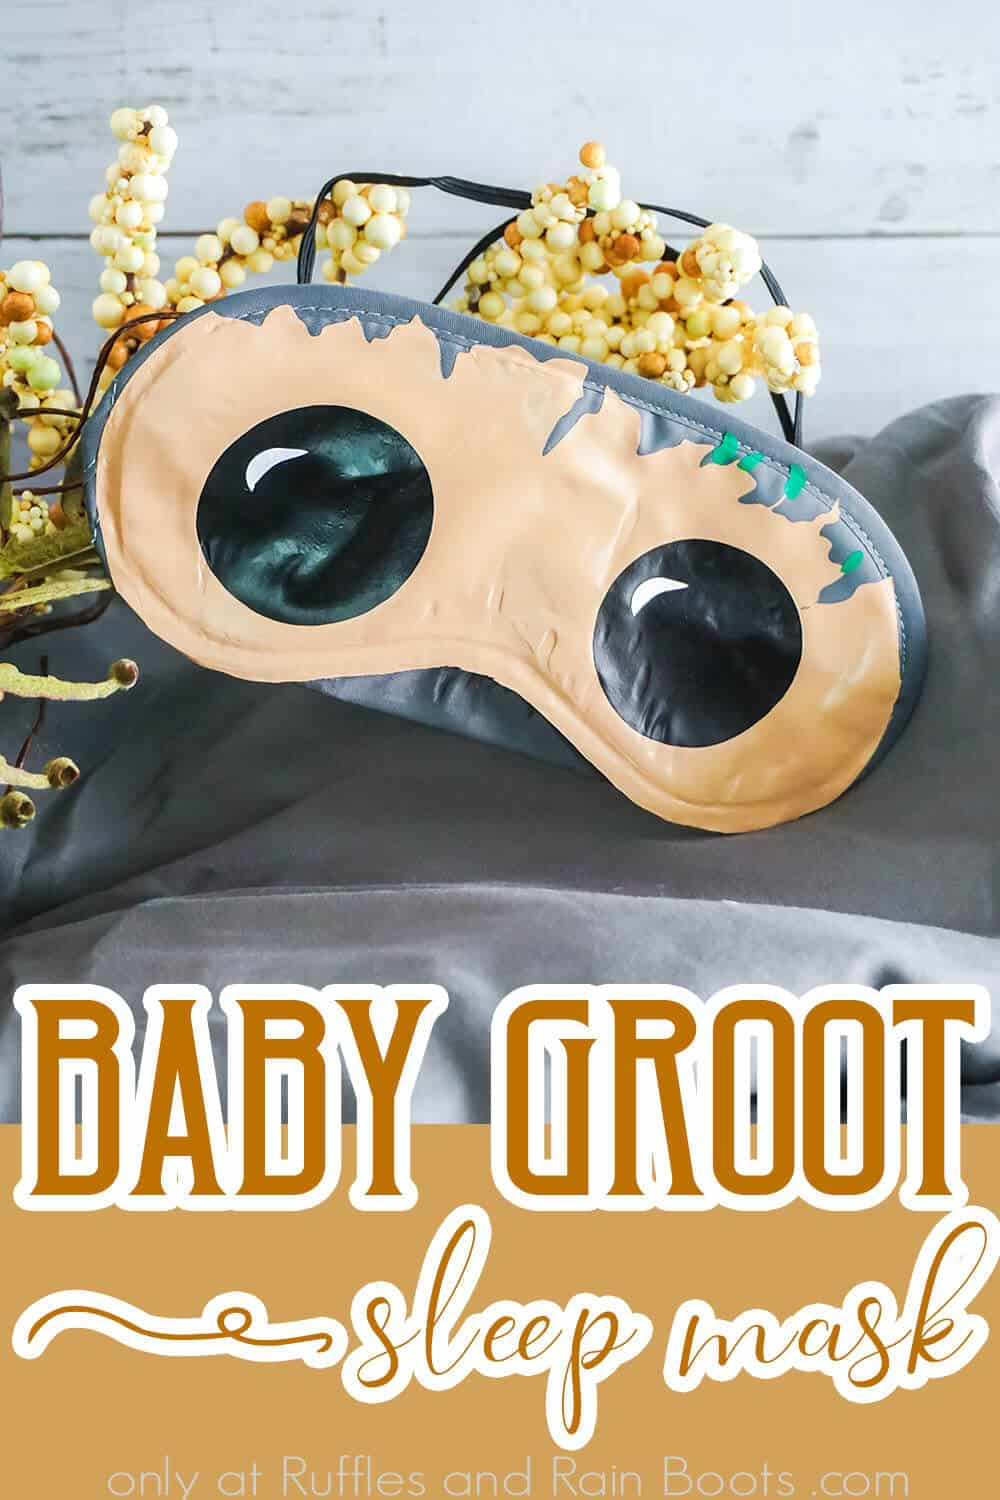 closeup of easy disney craft idea for a disney cruise fish extender gift idea with text which reads baby groot sleep mask